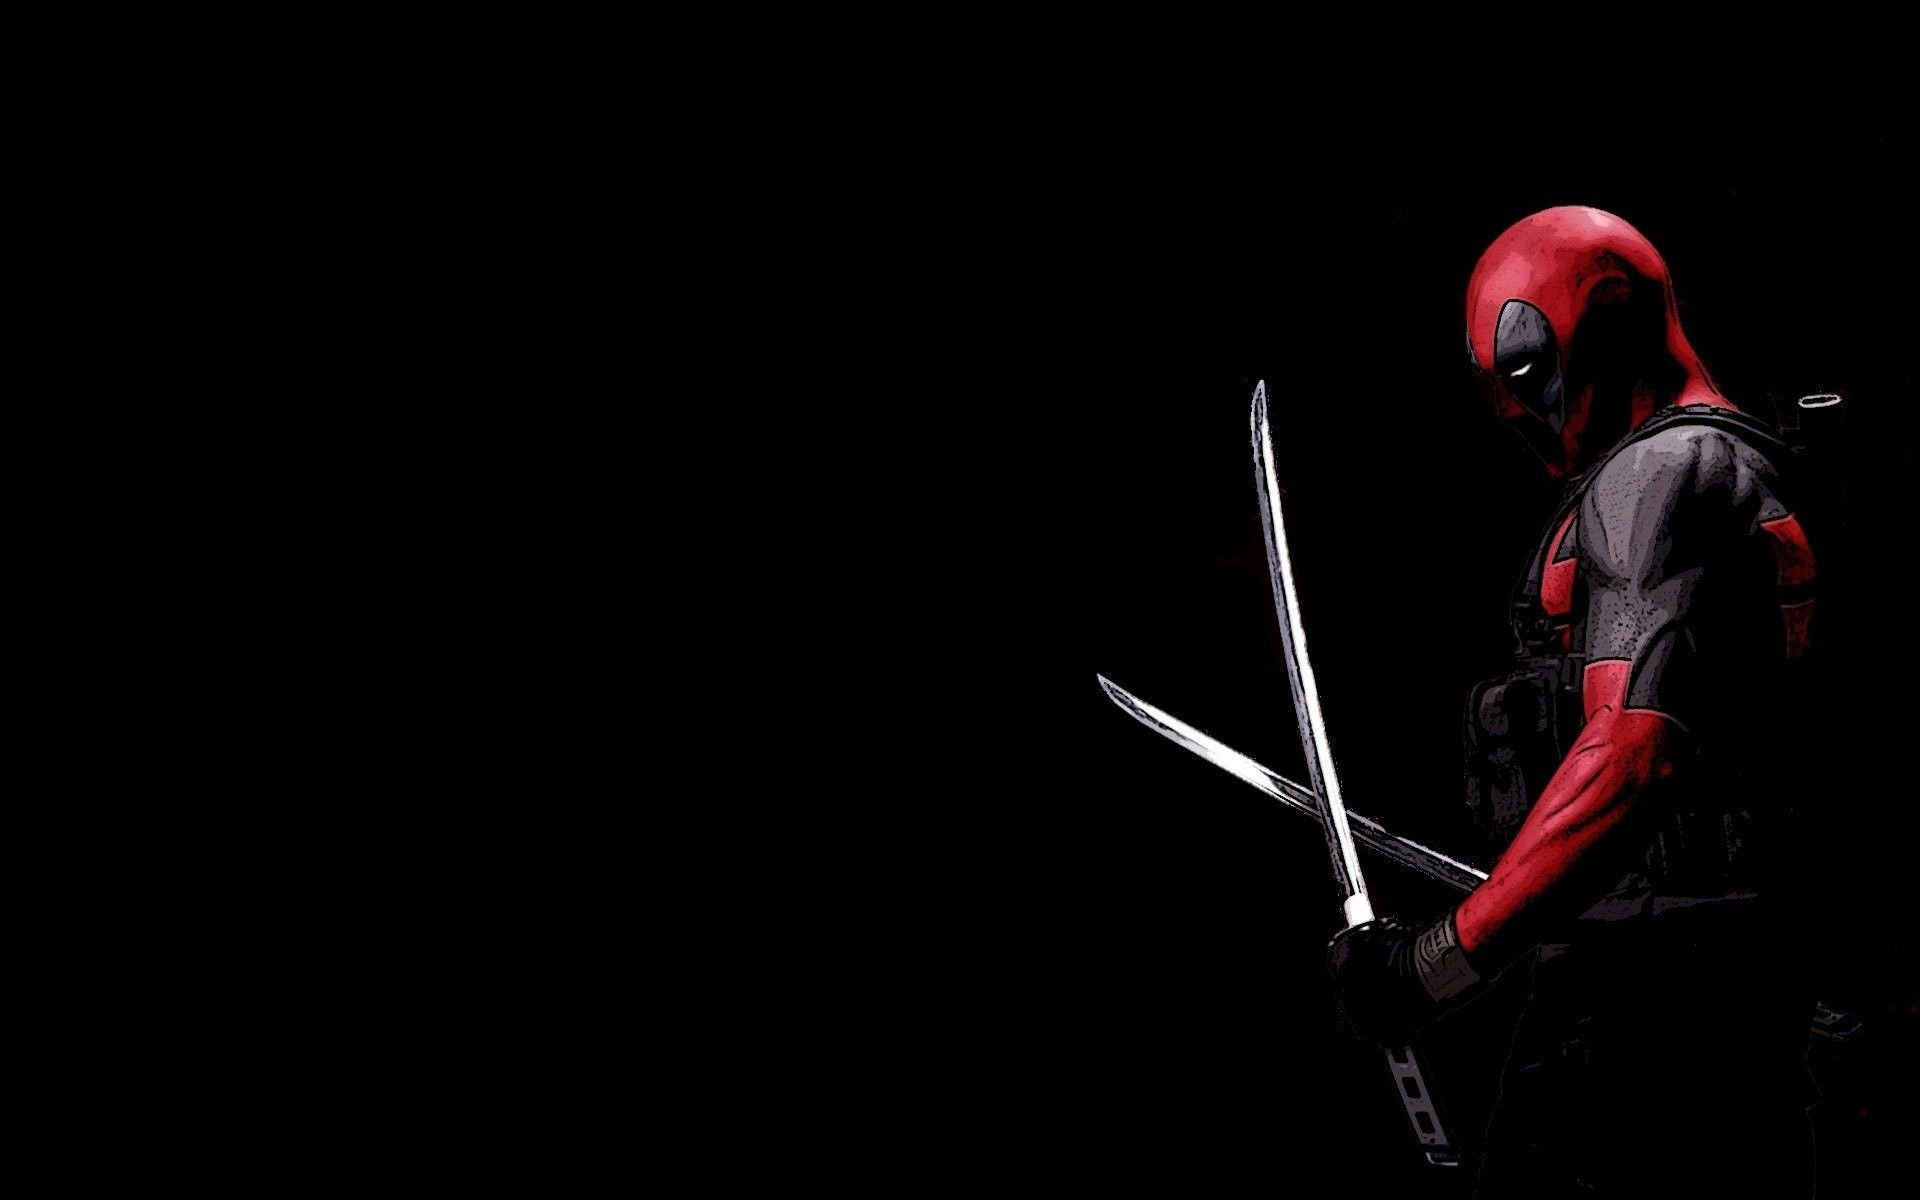 Deadpool Wallpaper 4k Download